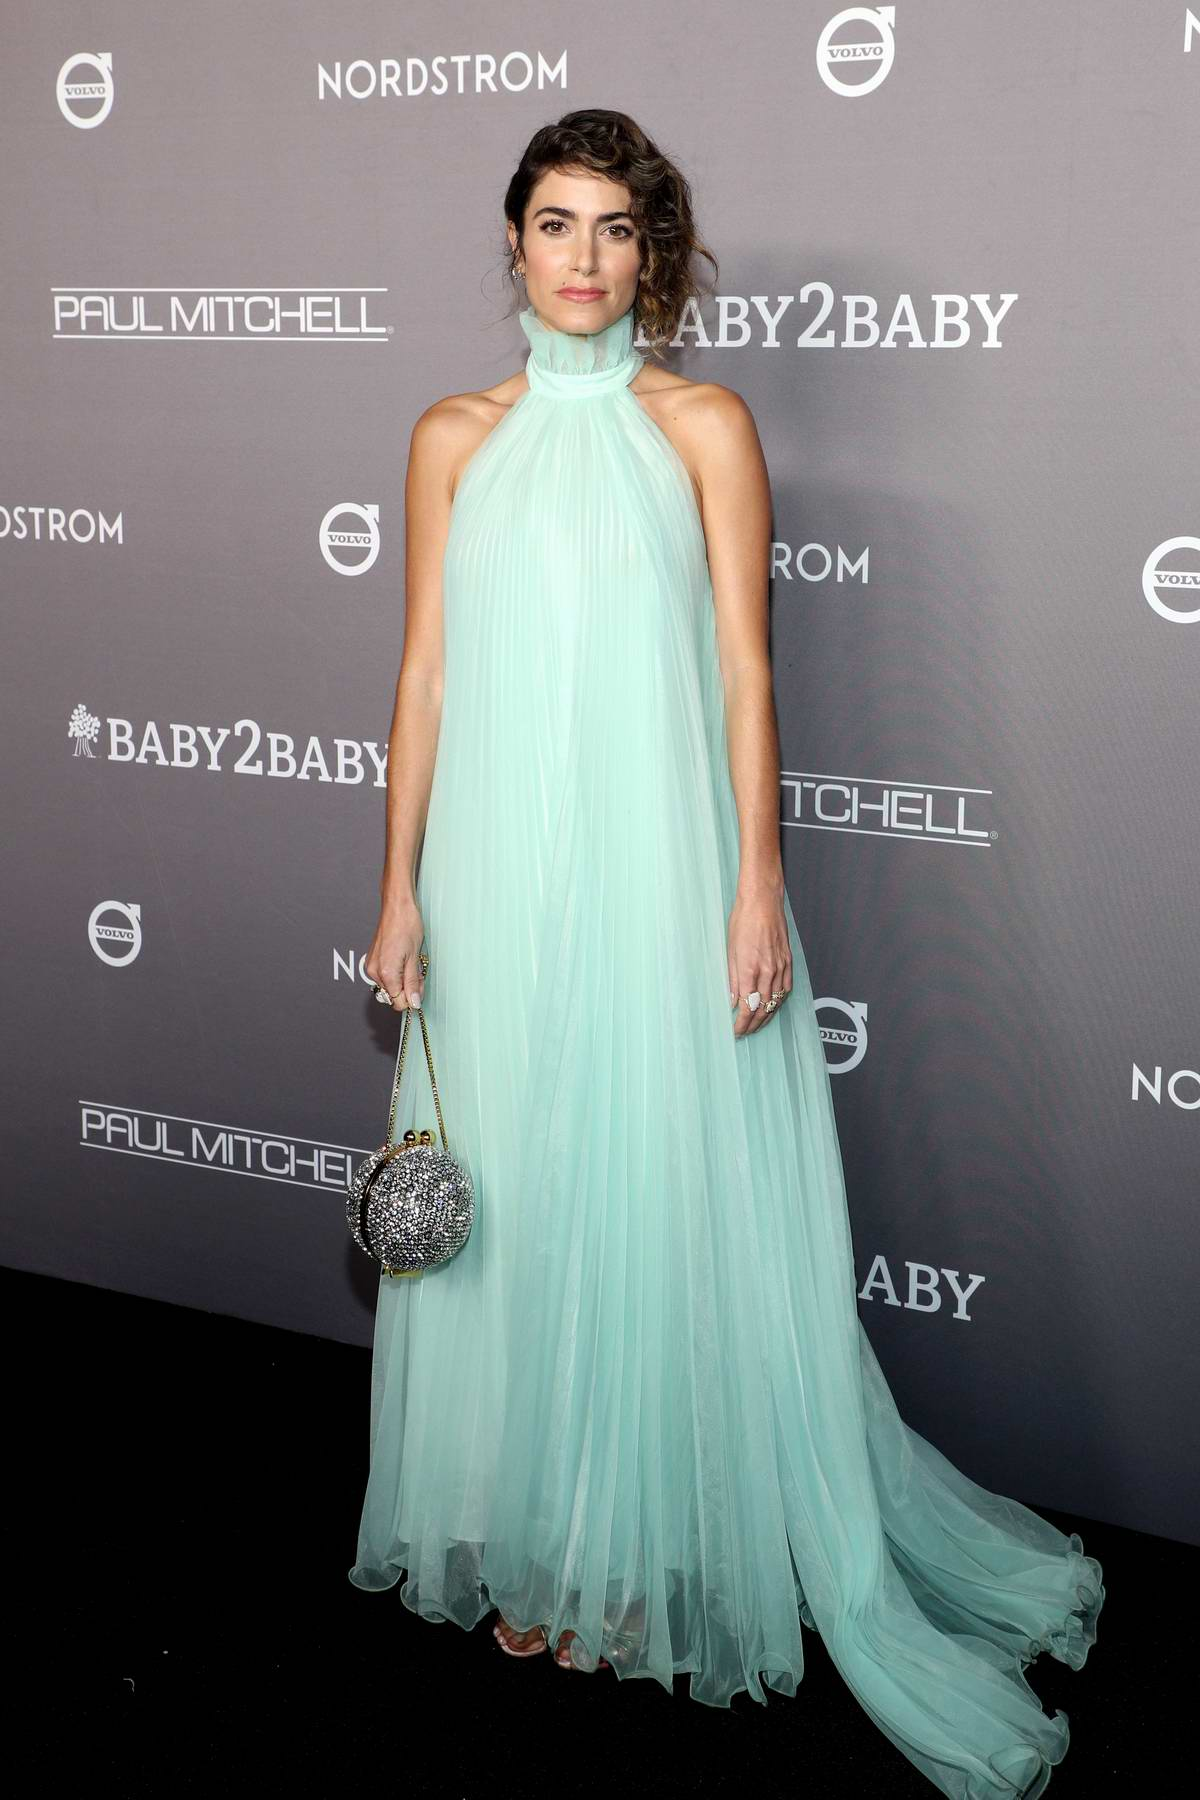 Nikki Reed attends the 2019 Baby2Baby Gala presented by Paul Mitchell at 3LABS in Culver City, California